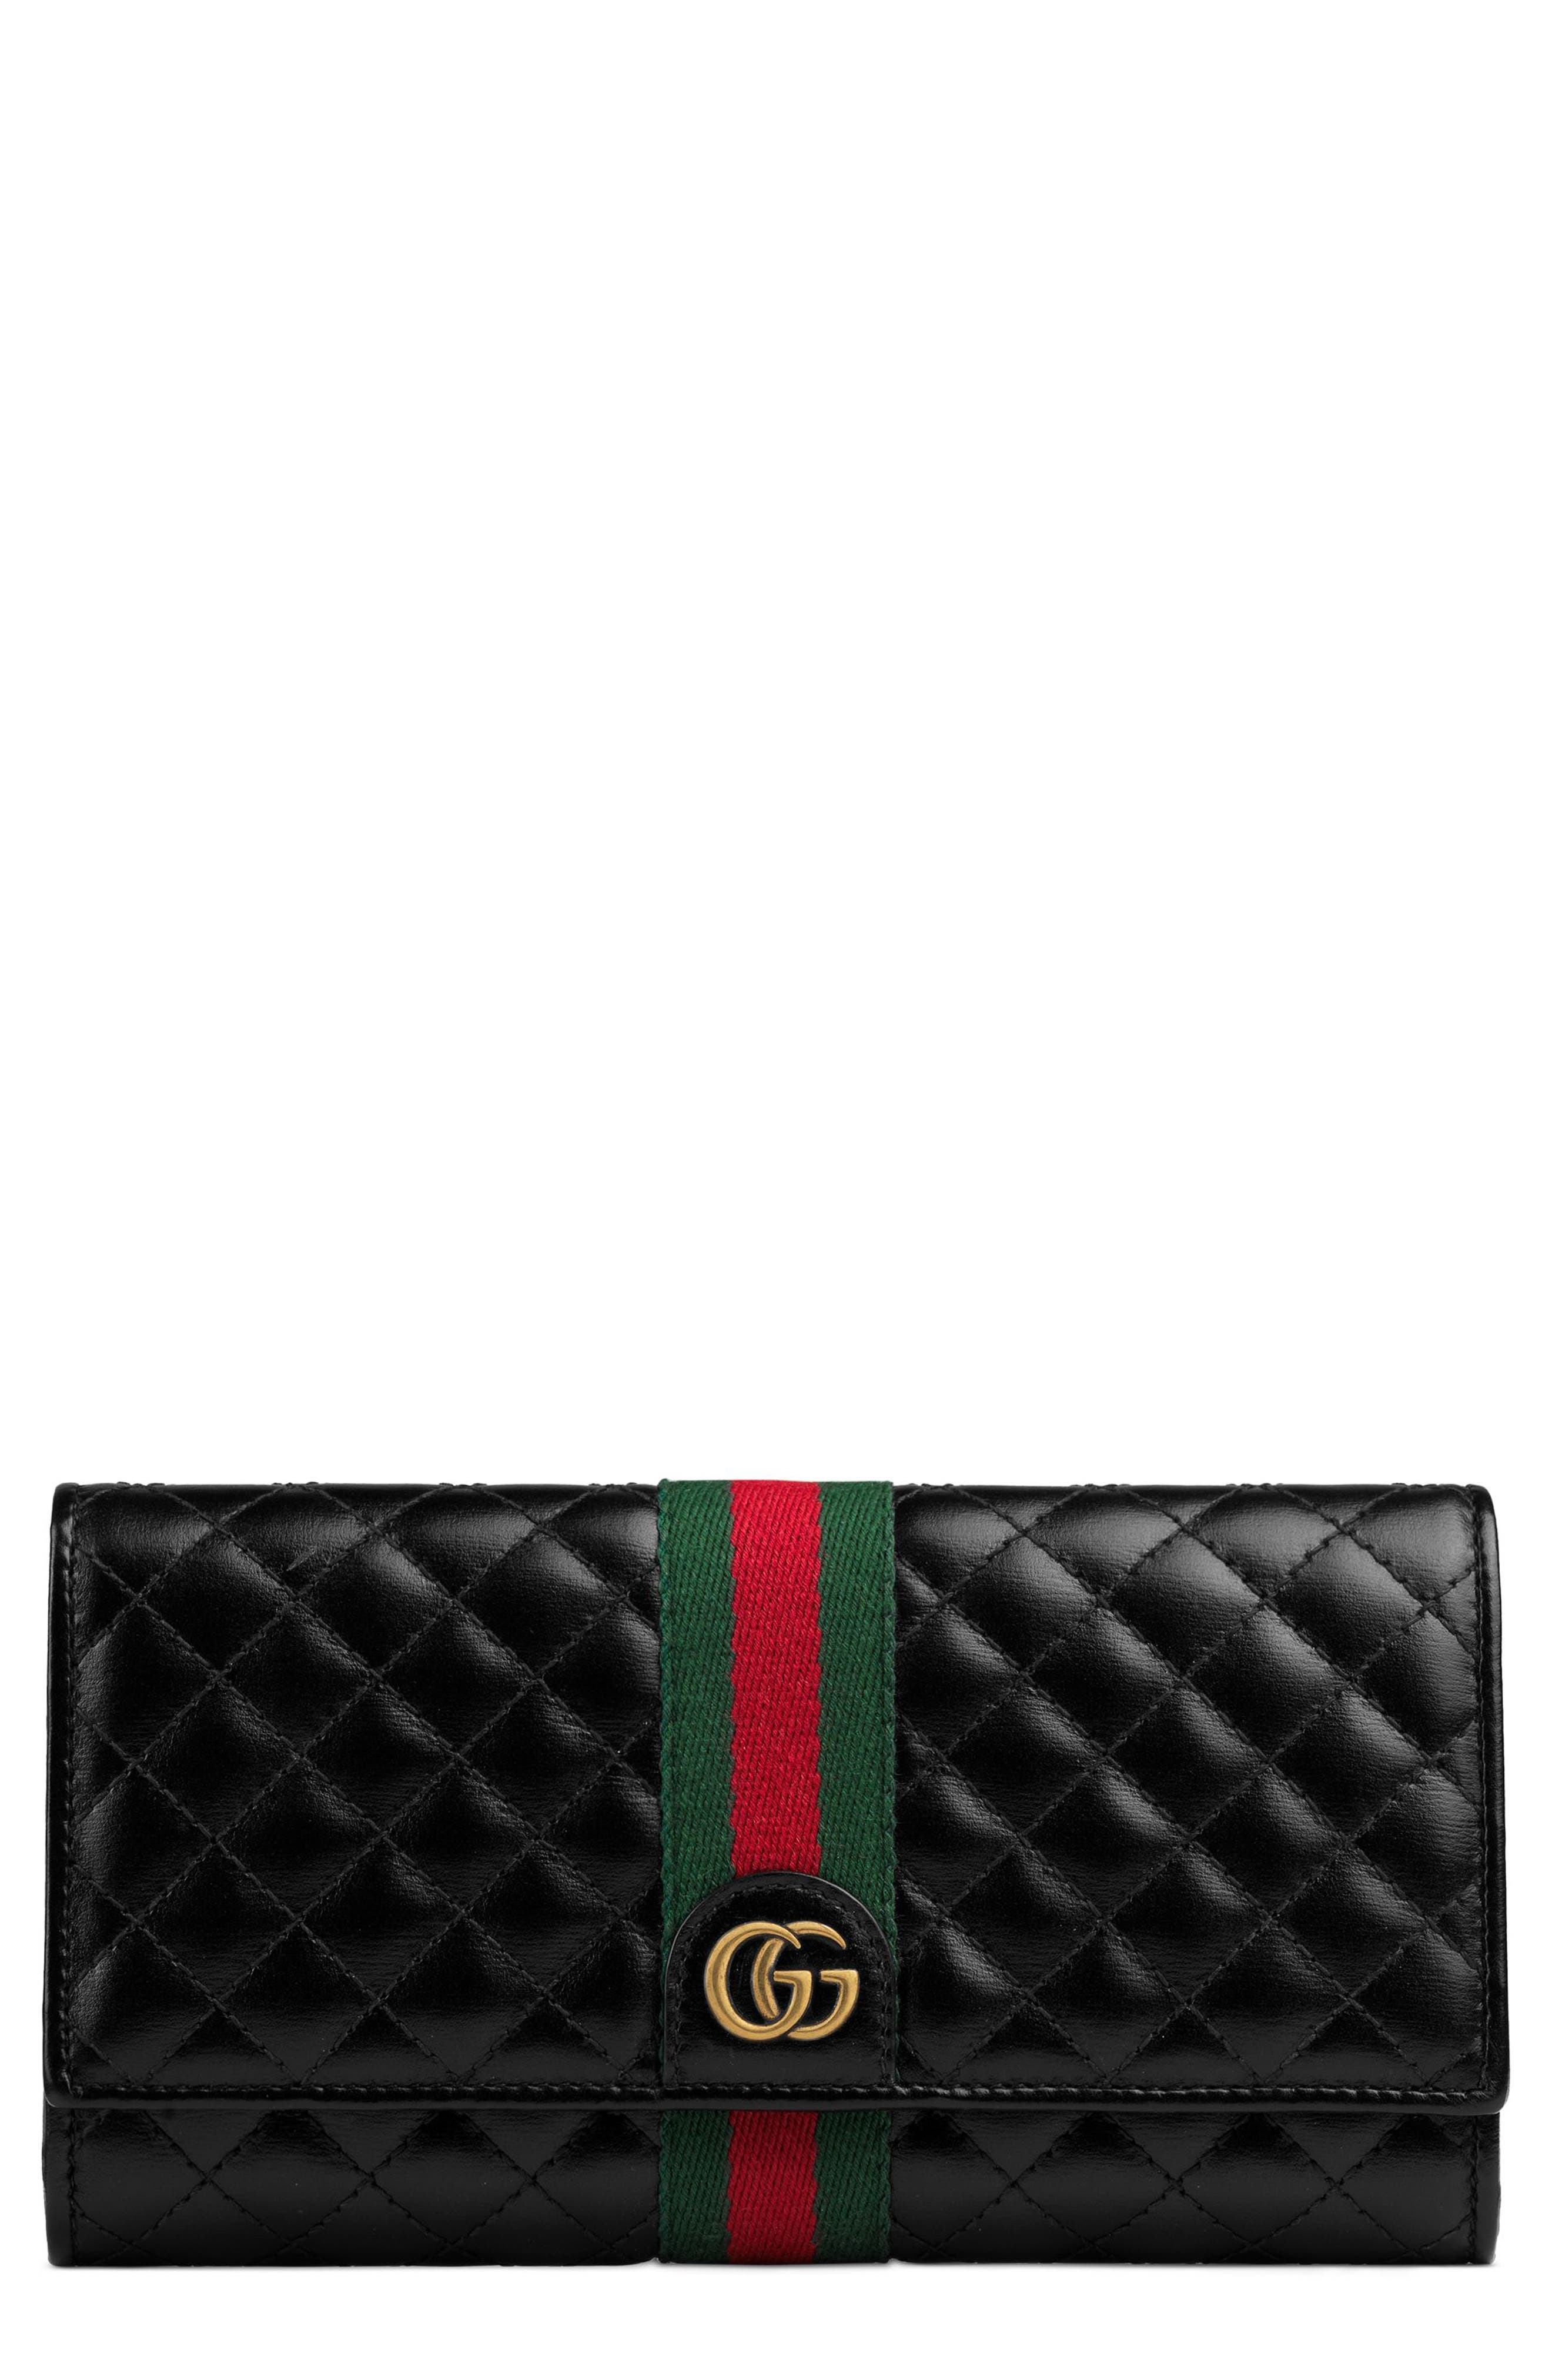 Quilted Leather Continental Wallet,                             Main thumbnail 1, color,                             NERO/ VERT/ RED